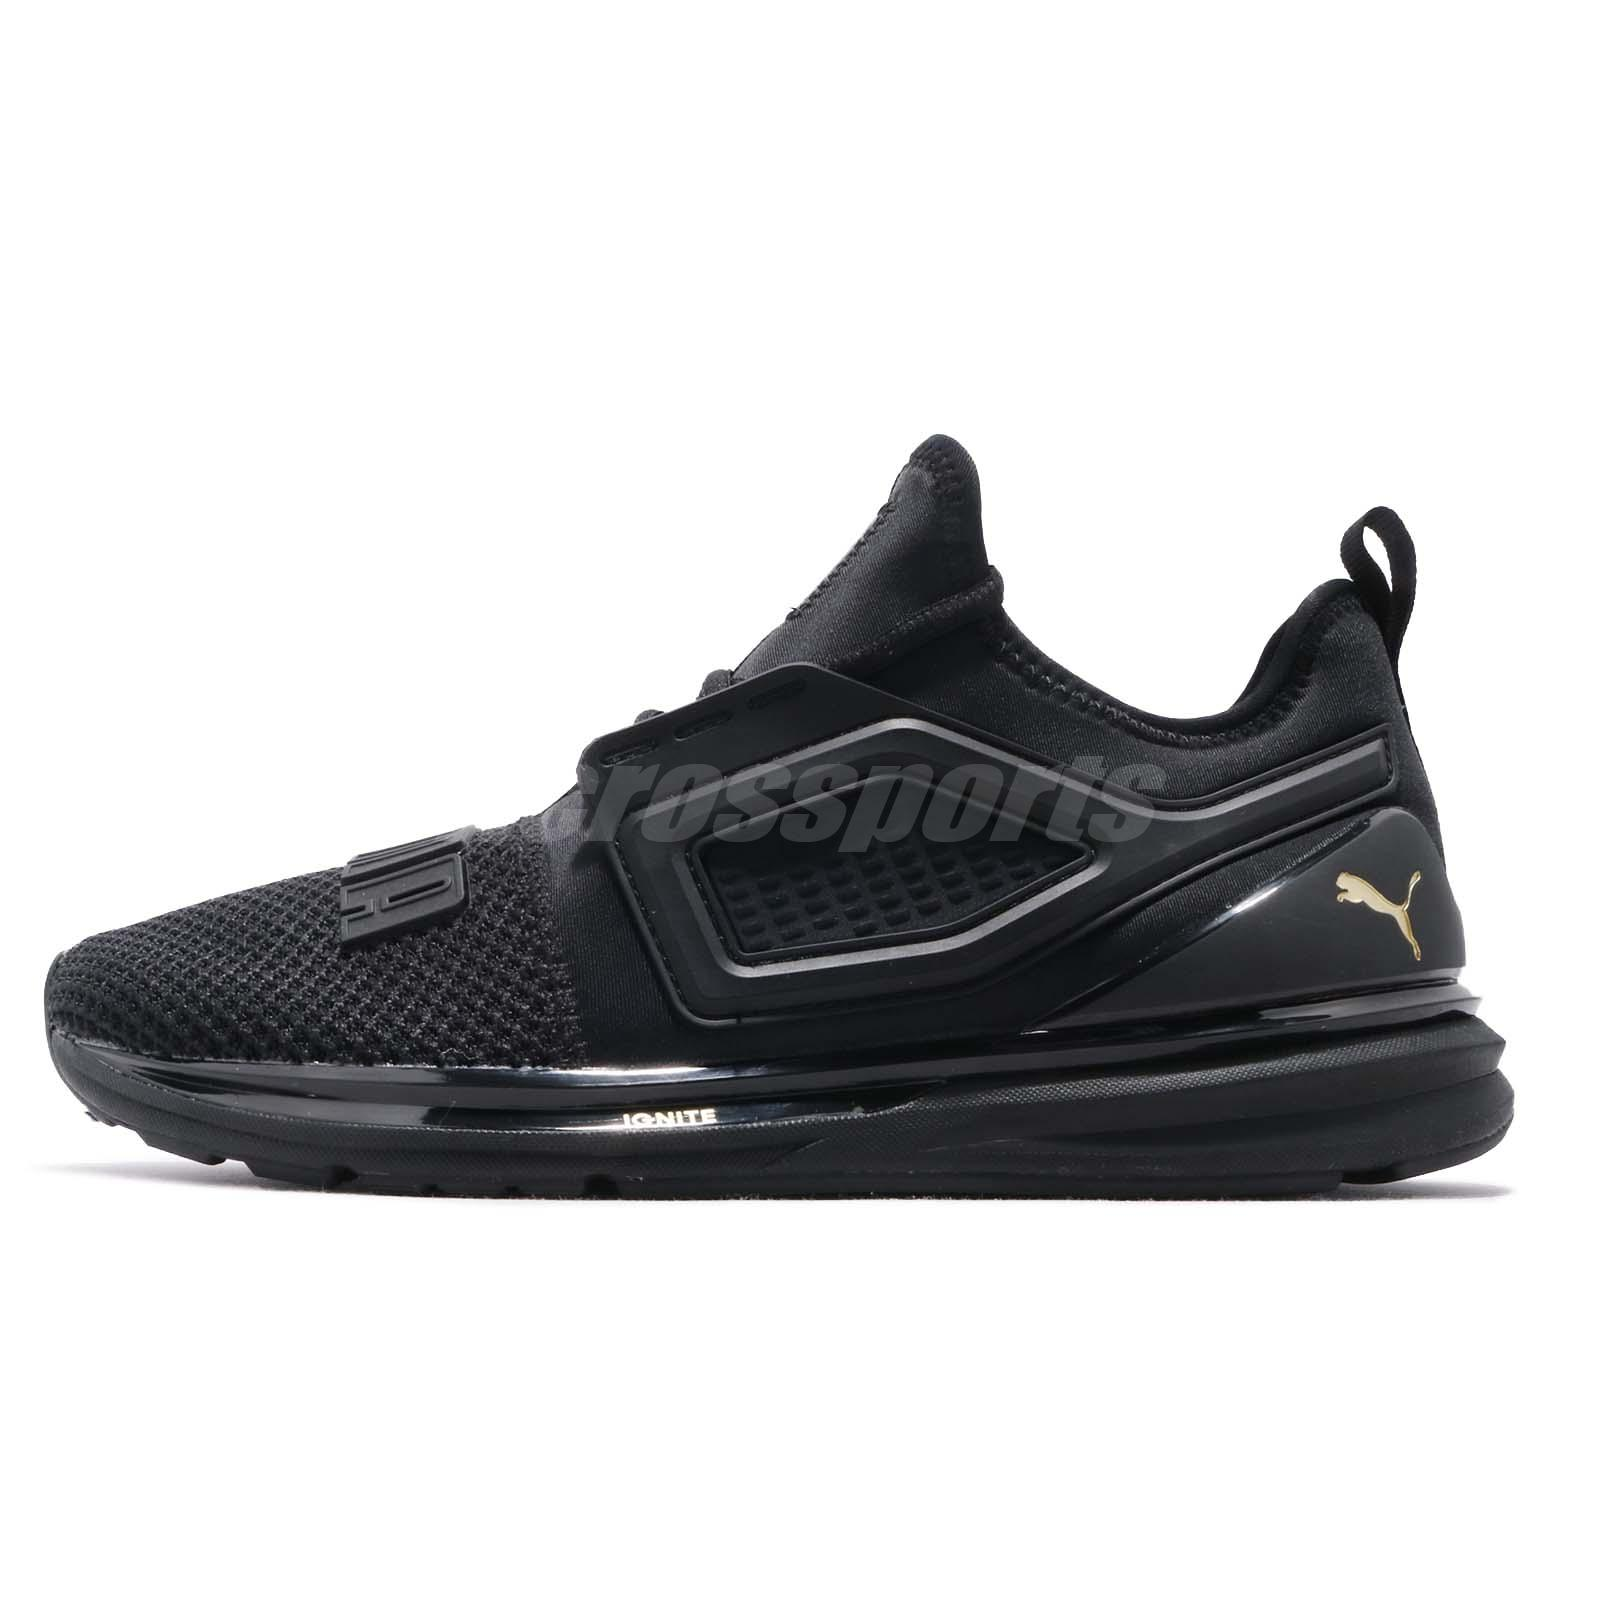 1dff656cfd90 Puma Ignite Limitless 2 Black Gold Men Running Casual Shoes Sneakers  191293-10